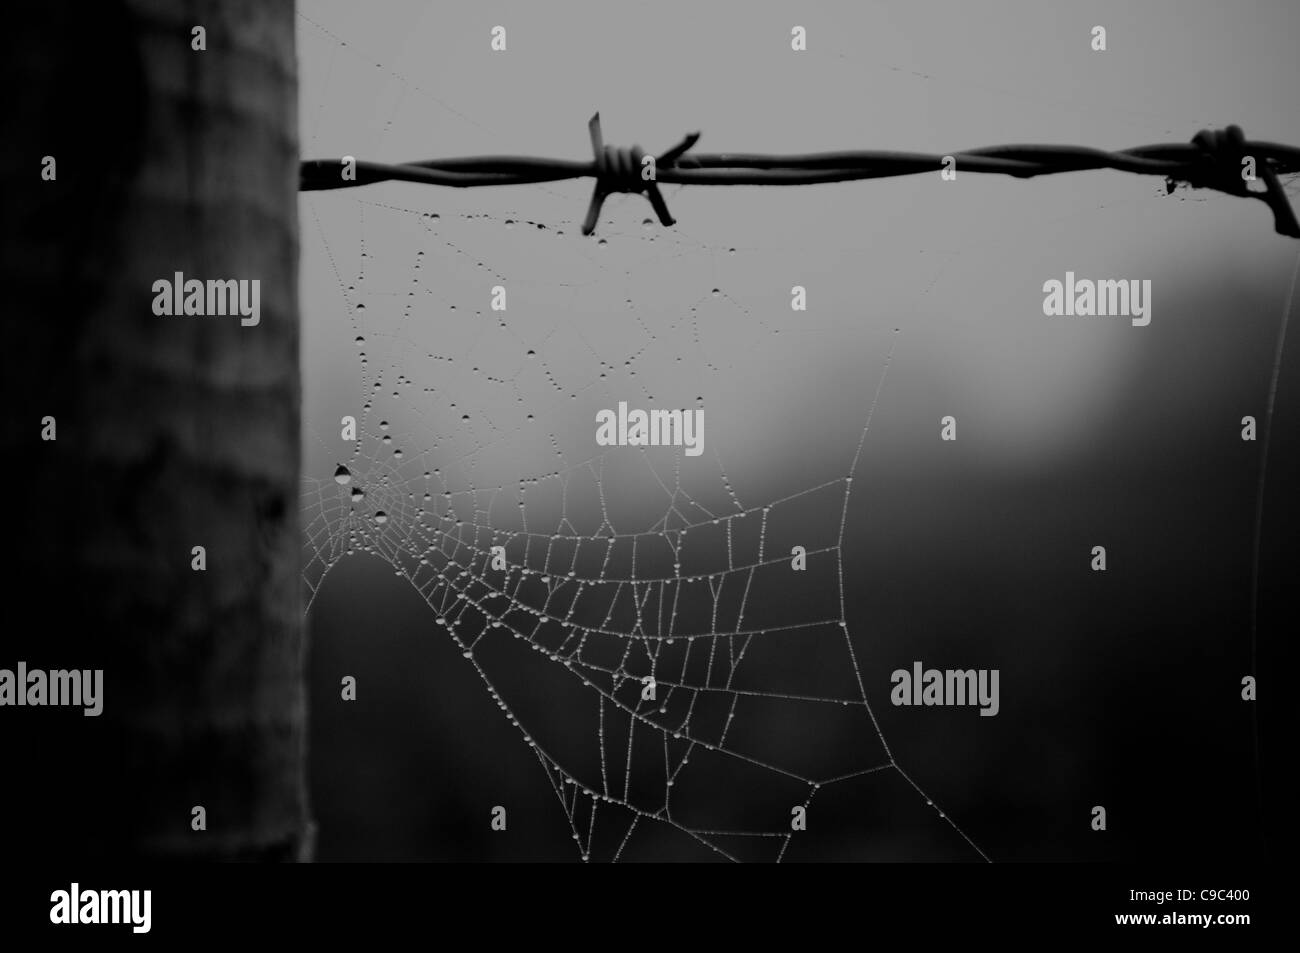 Spider web on a barb wire fence - Stock Image